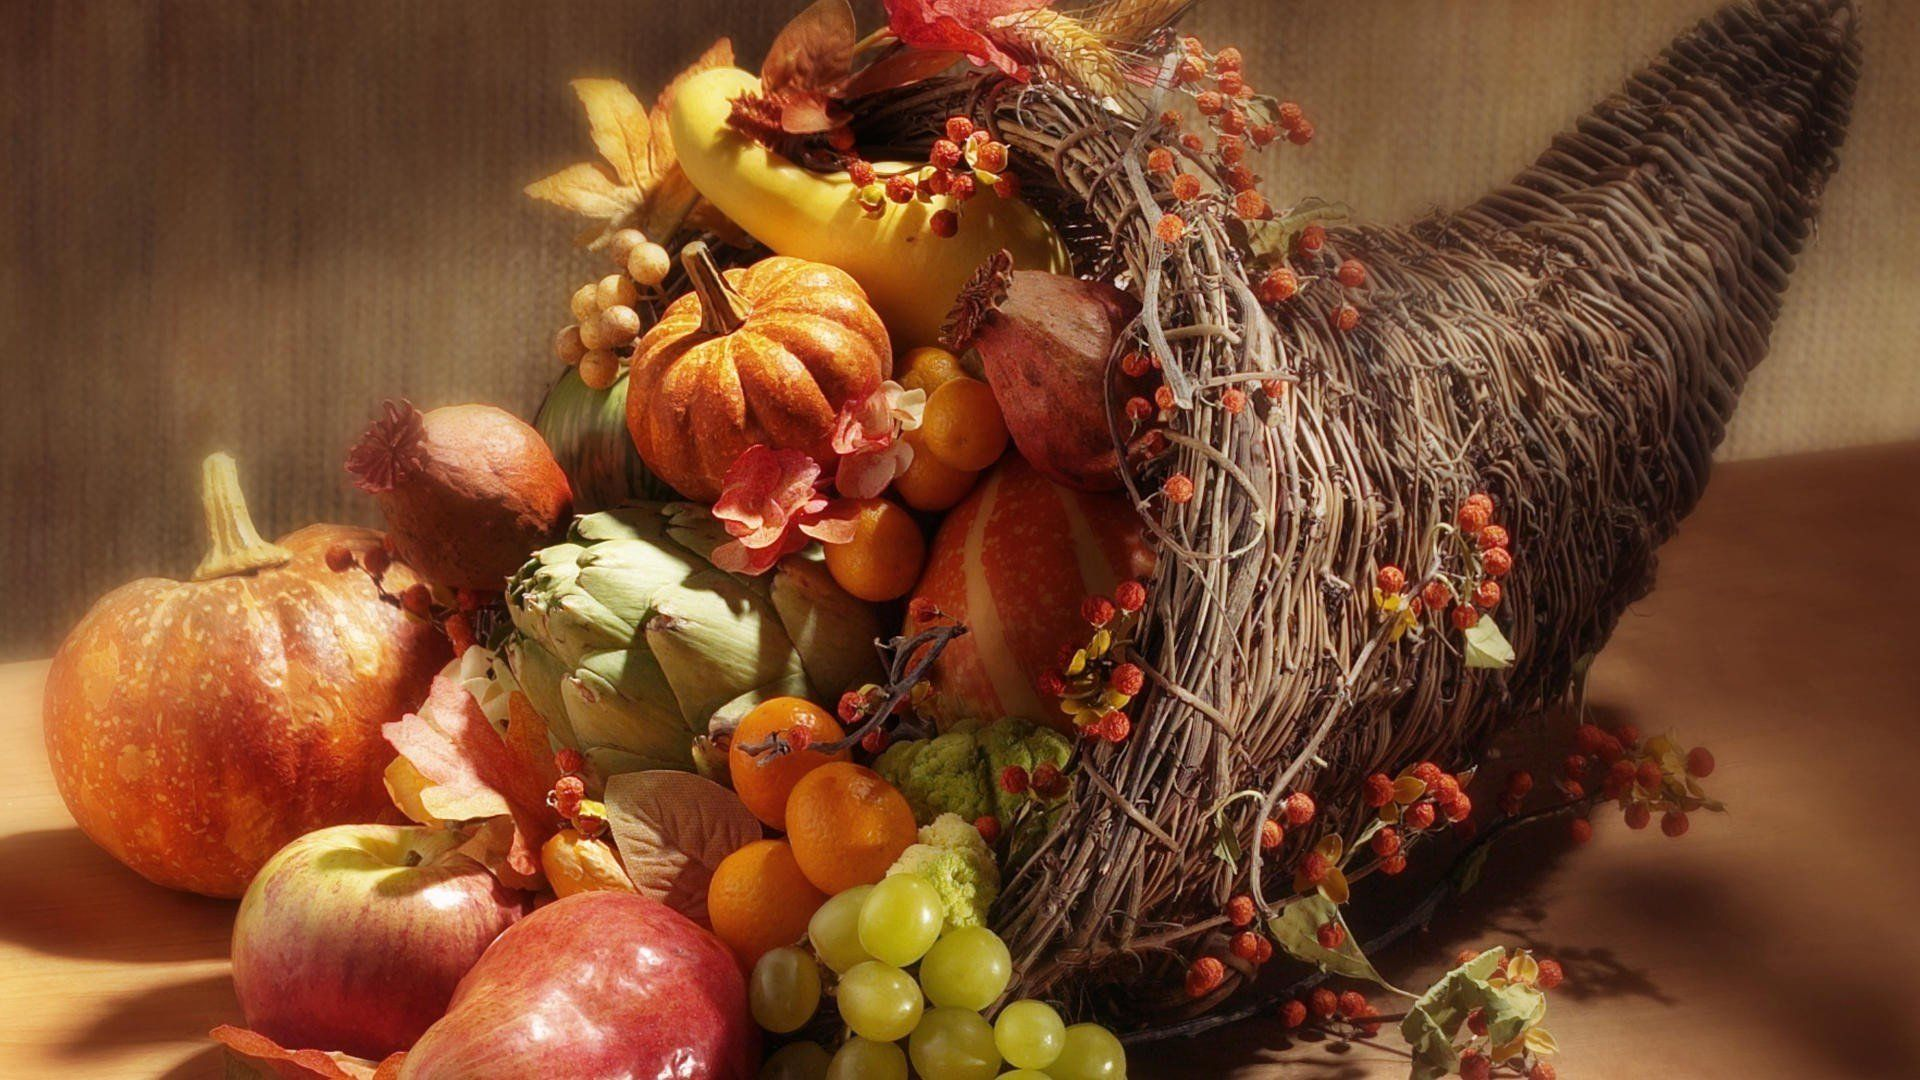 Cornucopia Wallpapers Thanksgiving cornucopia, Holidays